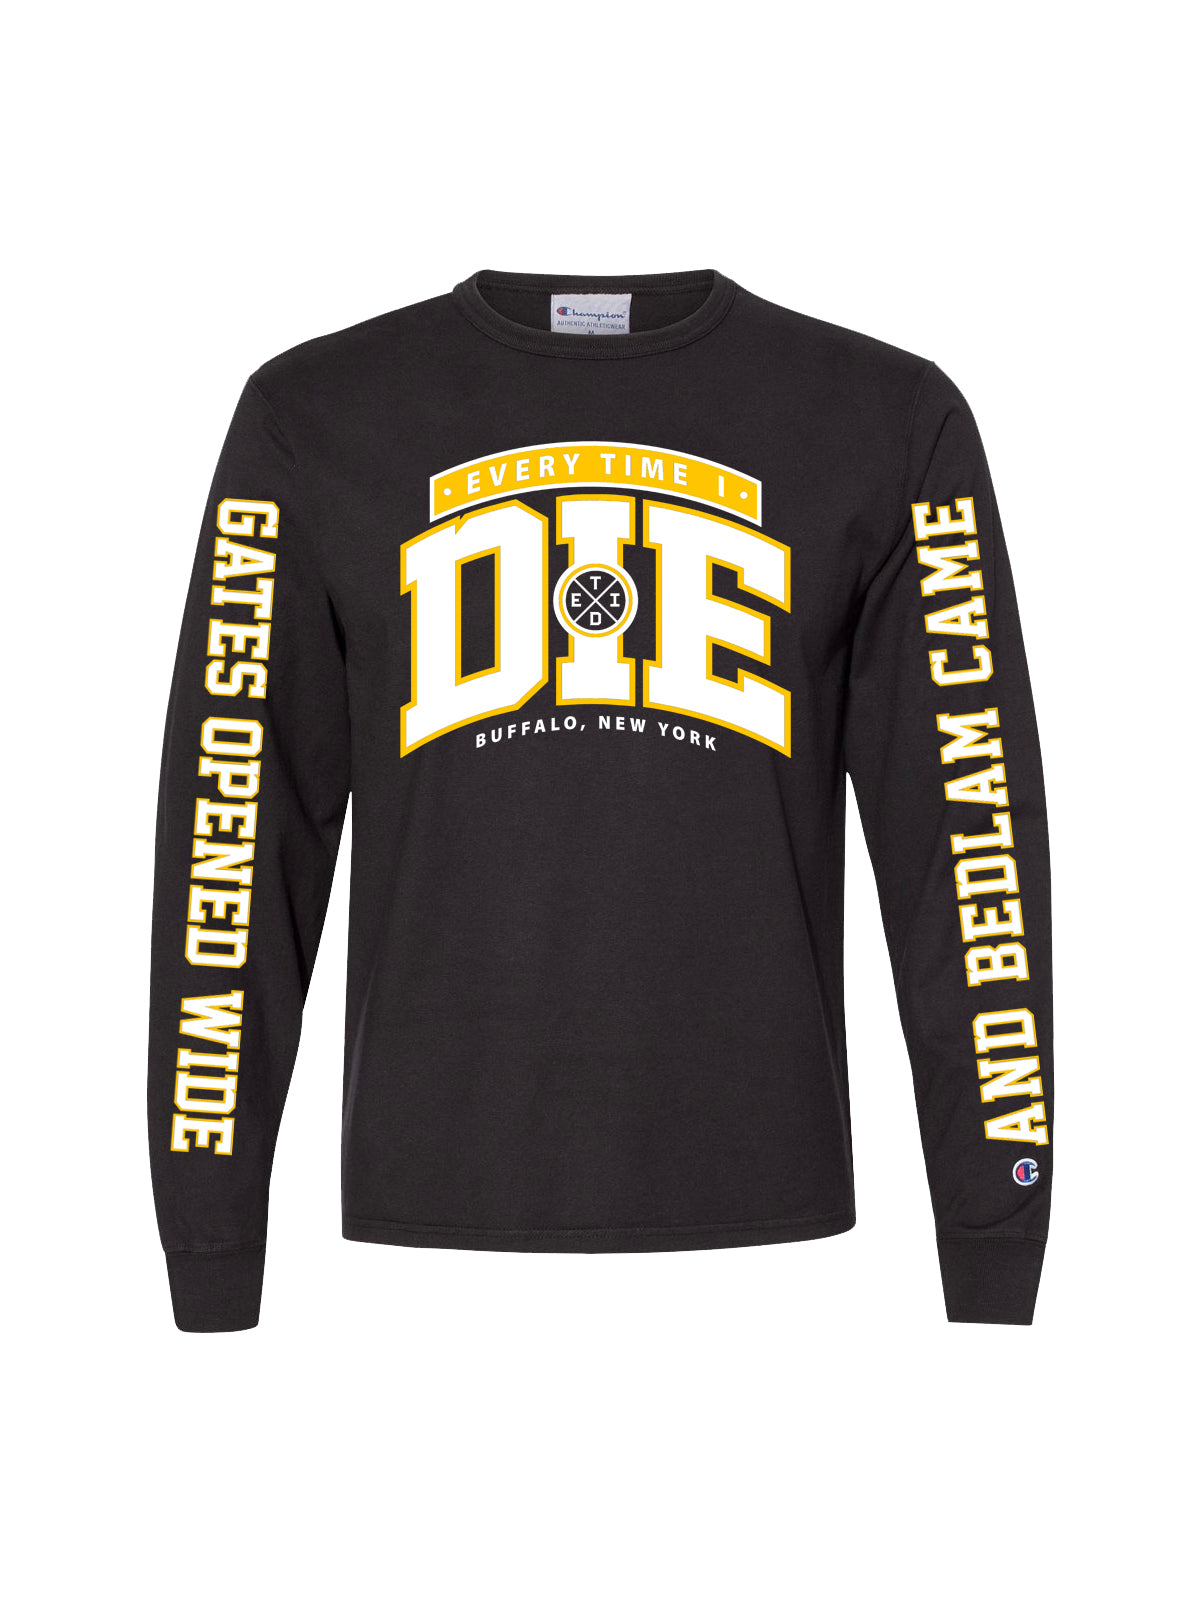 Every Time I Die - Chaos Reigns Longsleeve